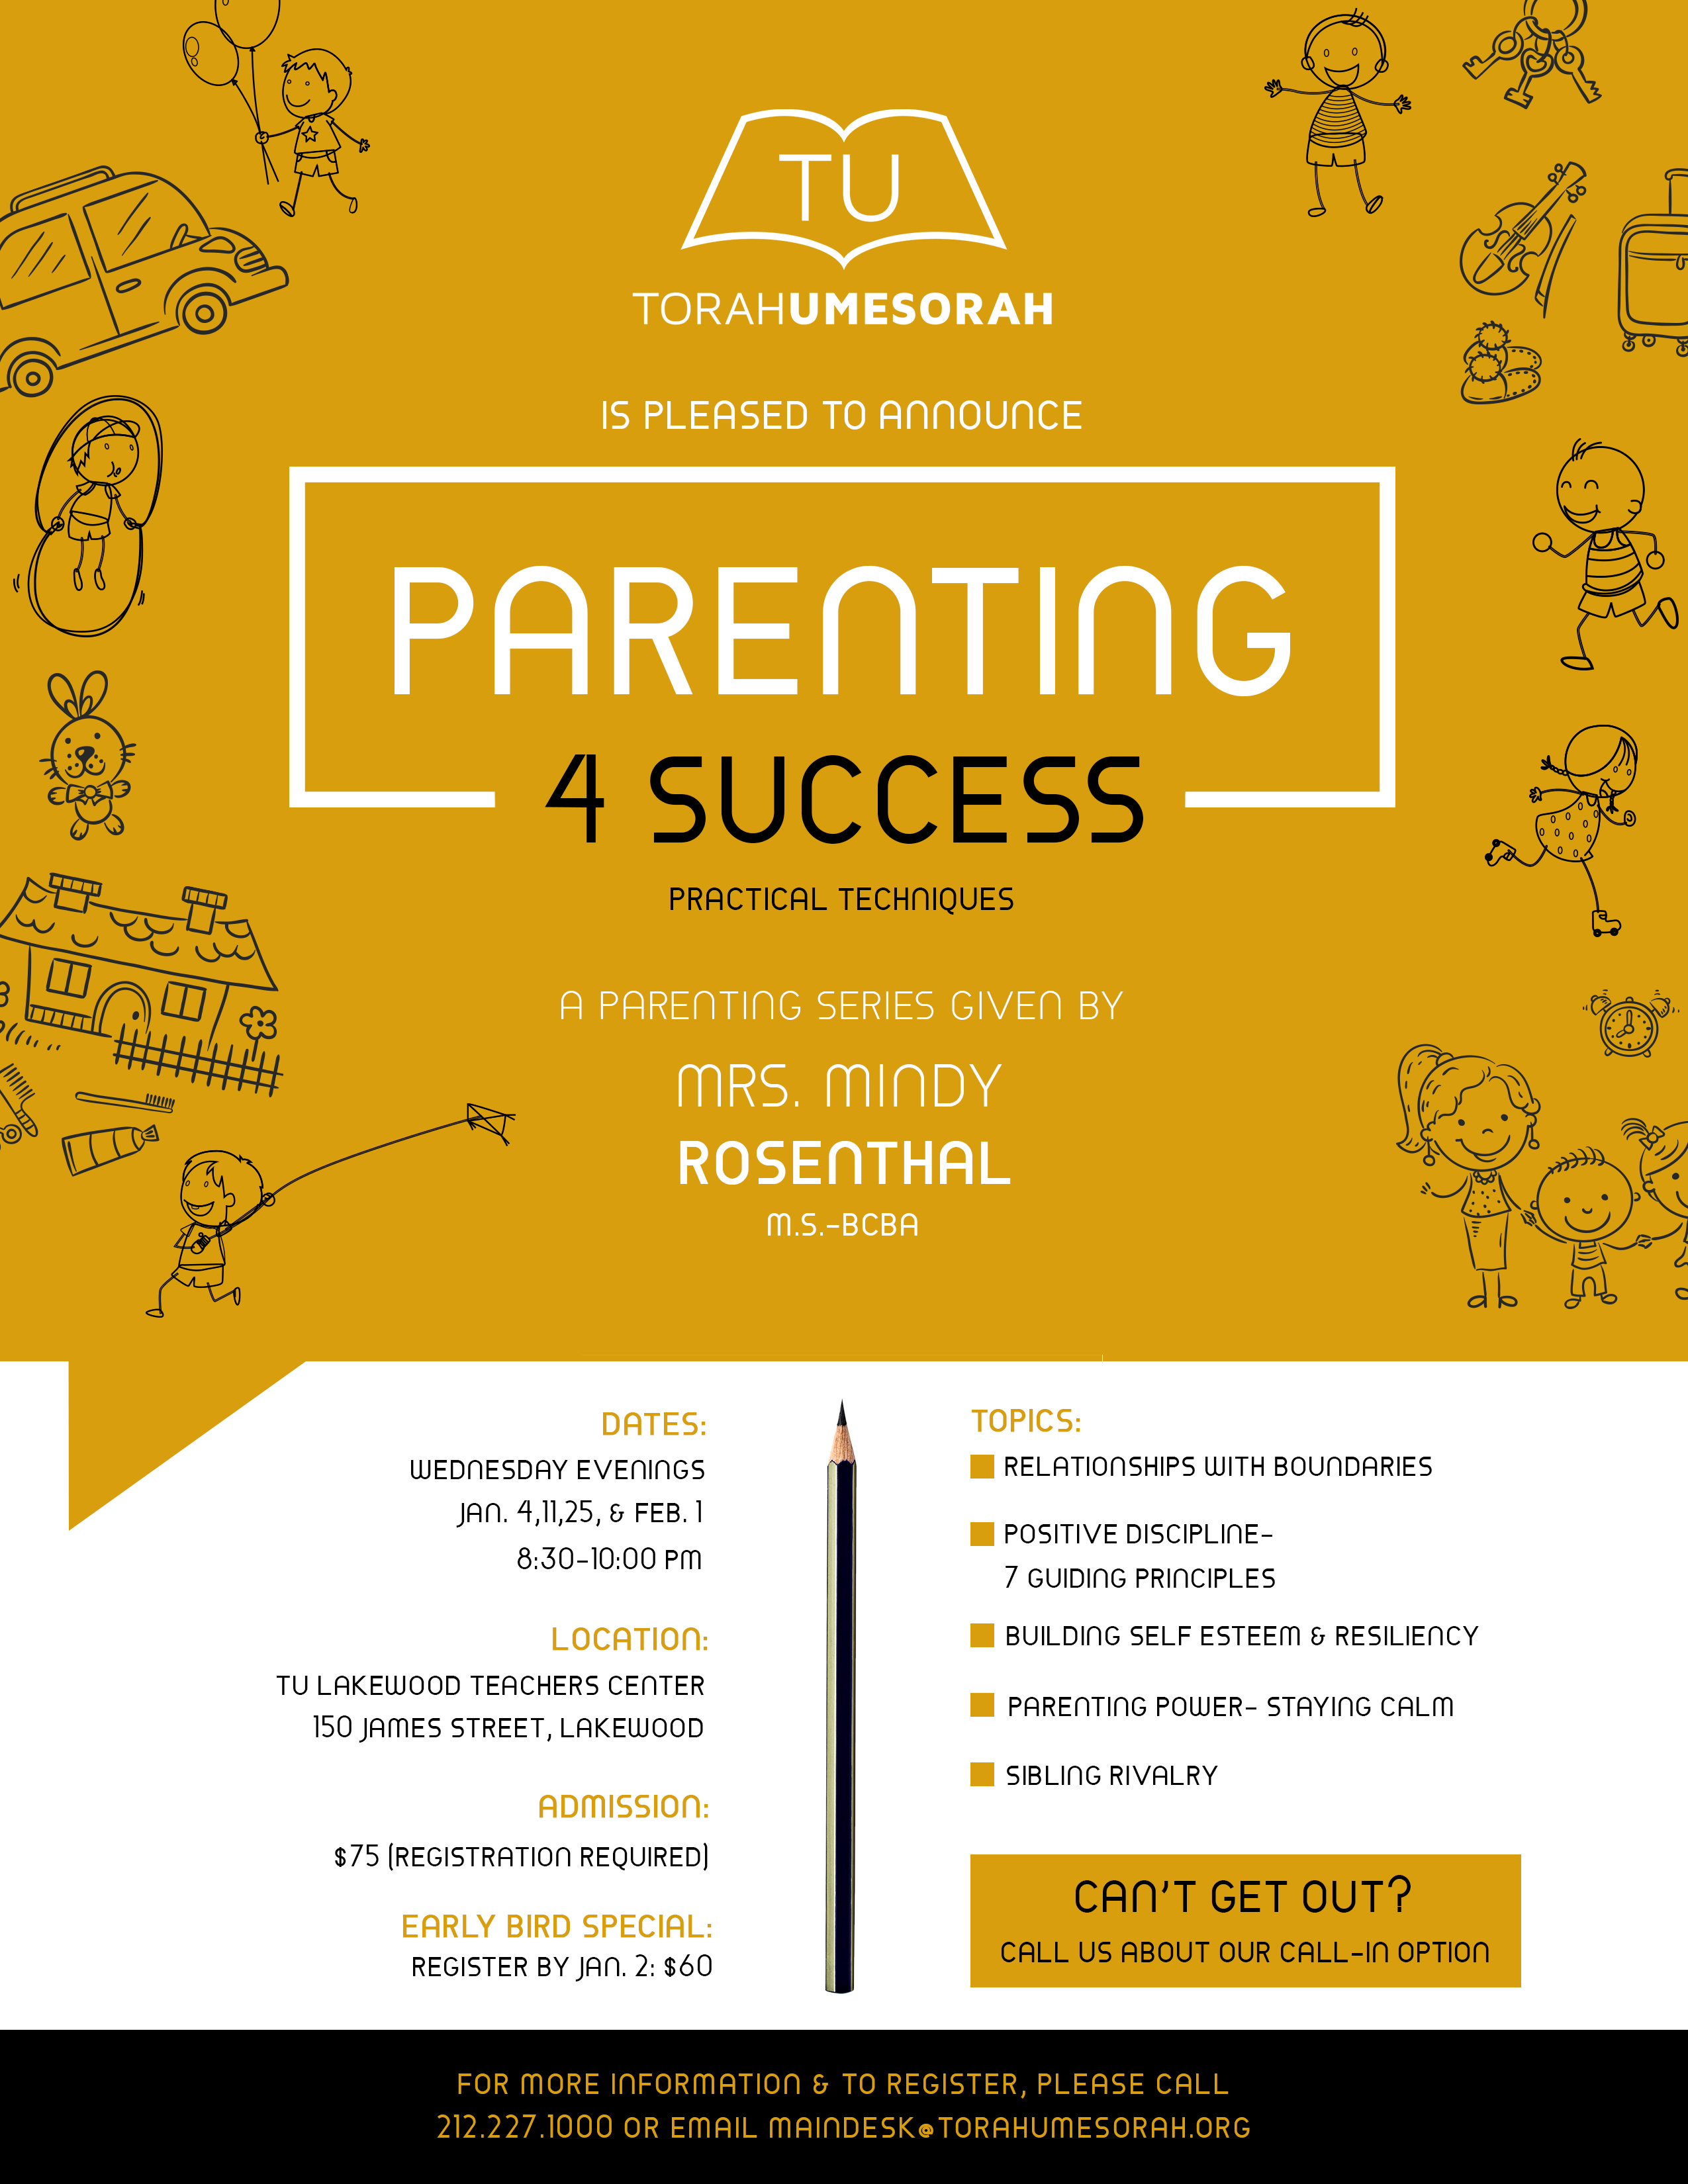 Parenting 4 Success